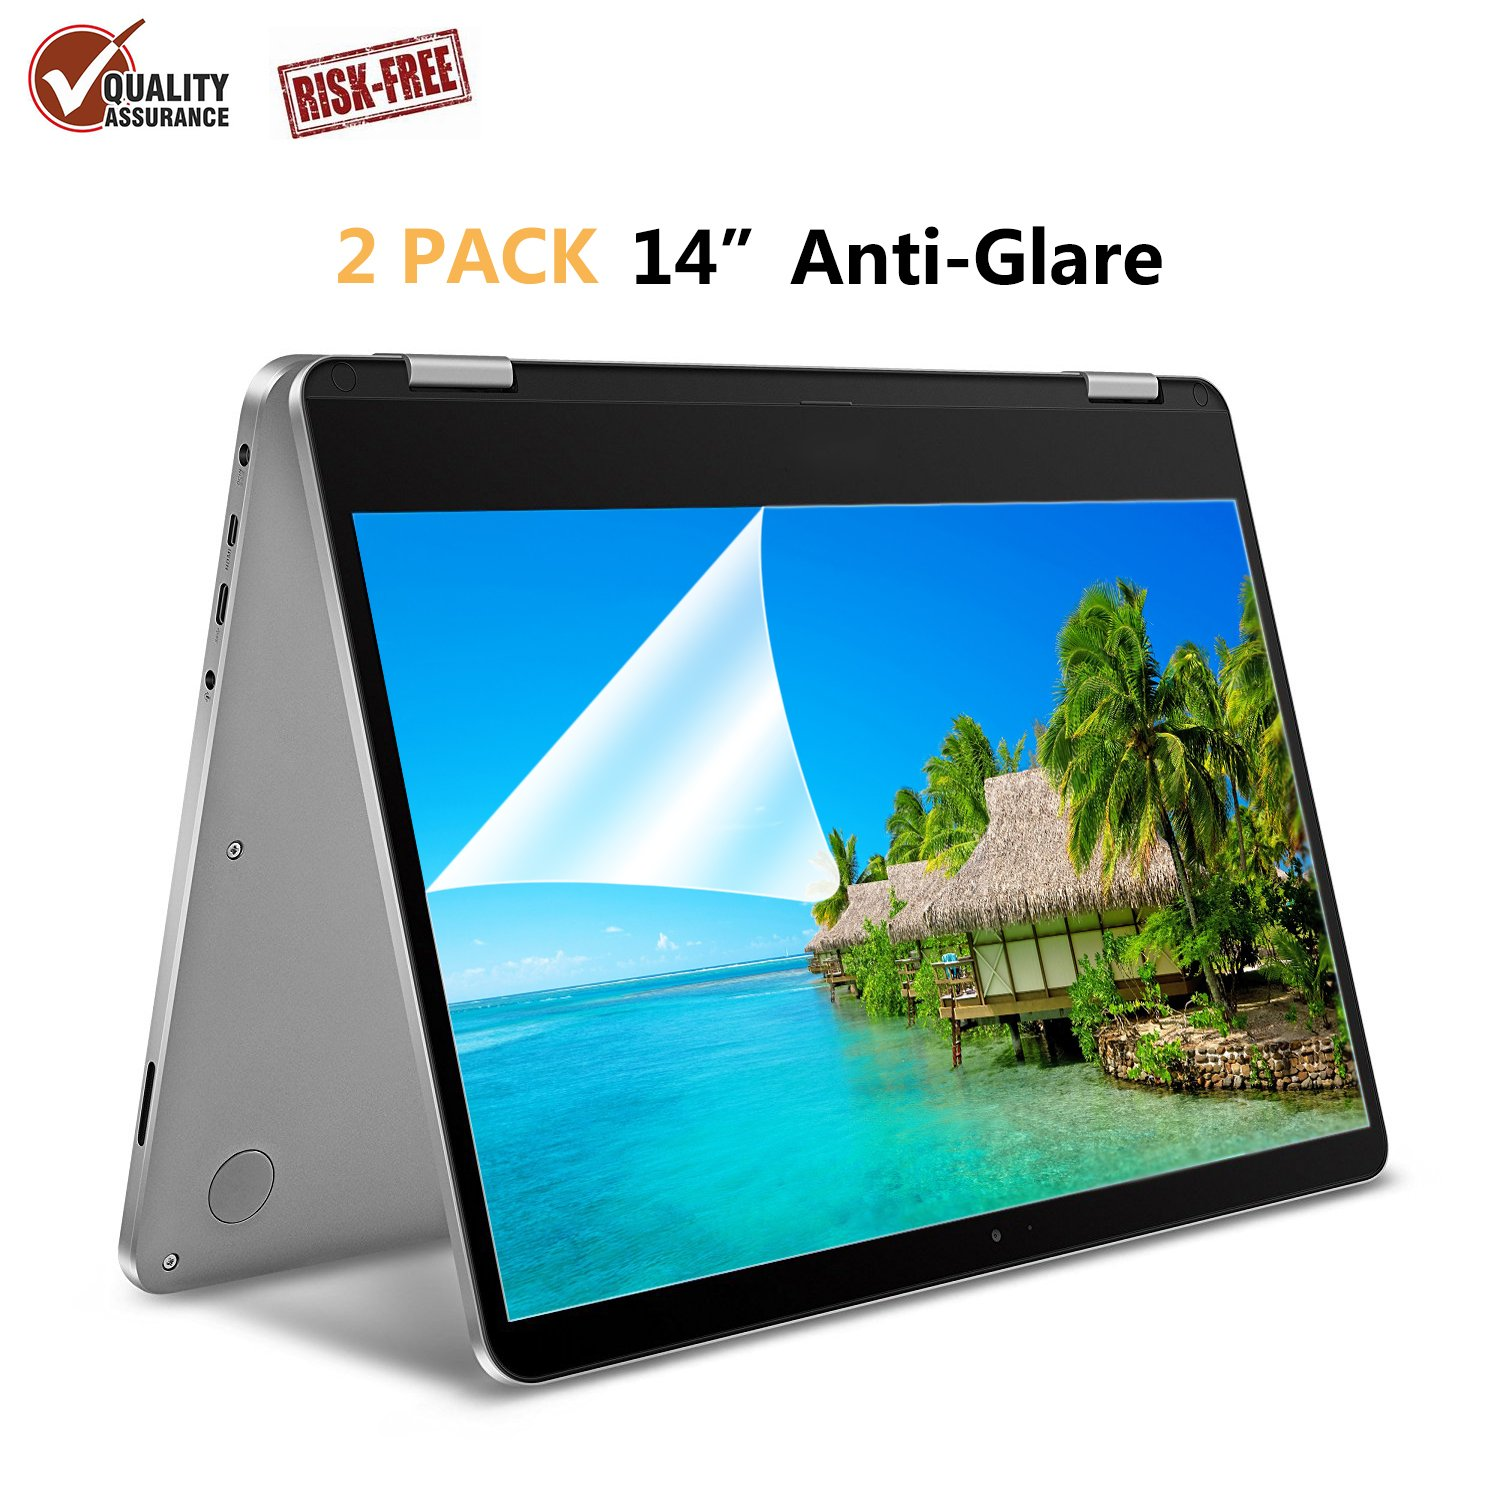 """[2 Pack] 14"""" Anti Glare Screen Protector Compatible for ASUS VivoBook 14 Inch/HP Stream 14 Inch/Acer Chromebook 14 Inch/Lenovo Flex 14 Inch/HP ChromeBook 14 Inch"""